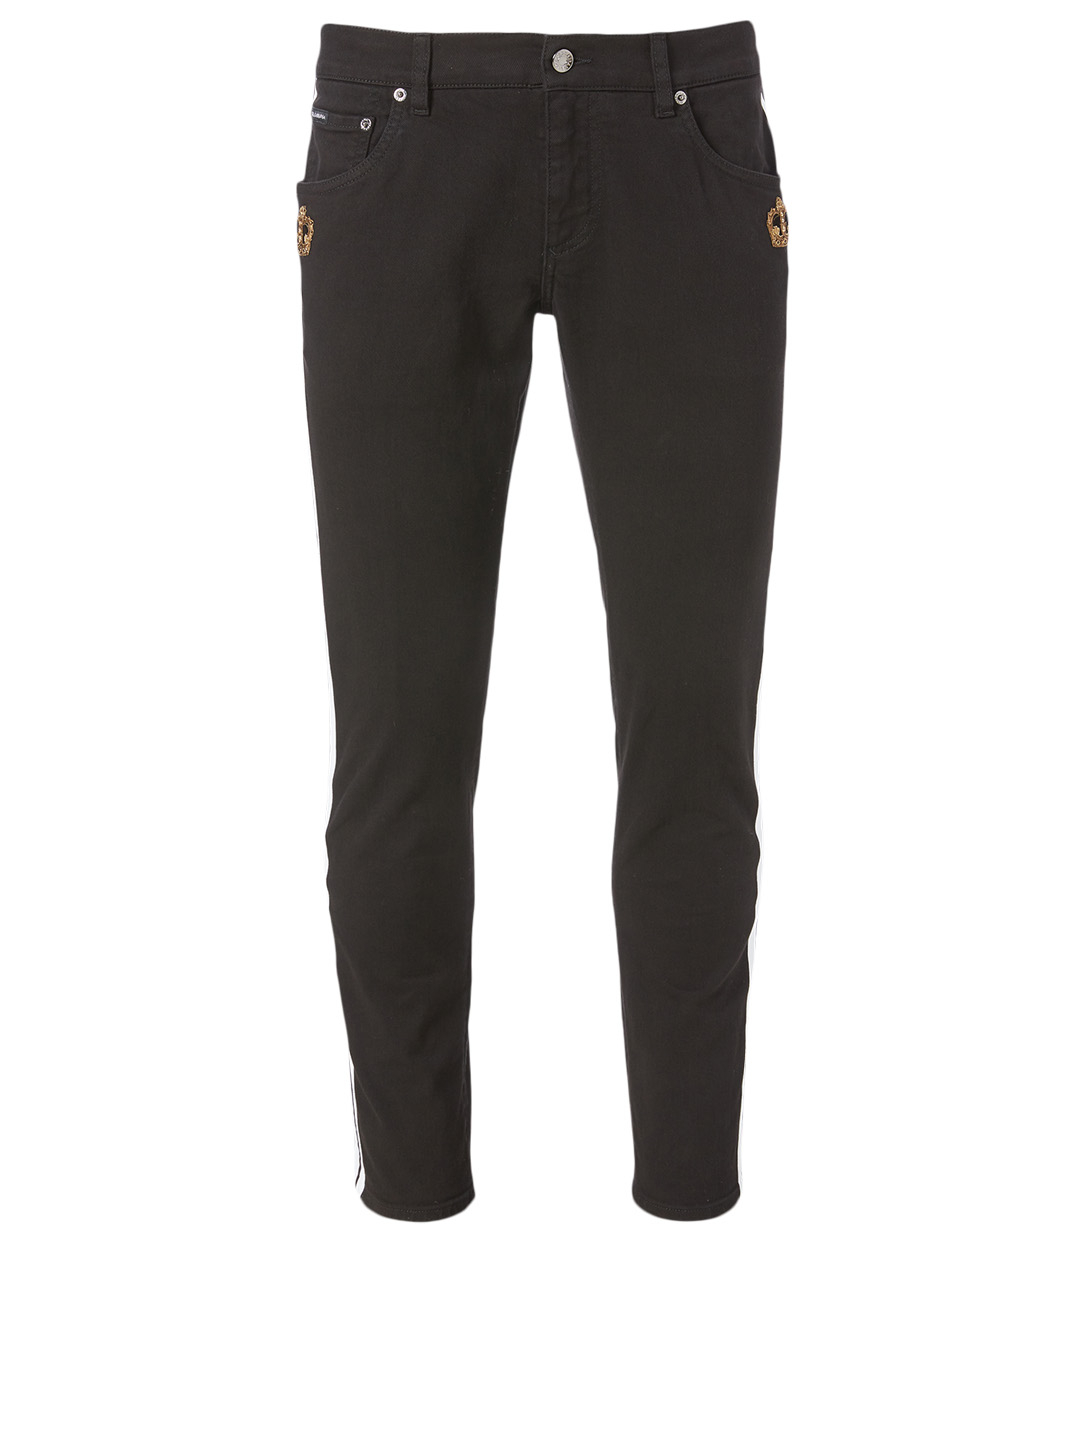 DOLCE & GABBANA Cotton Stretch Skinny Jeans Men's Multi